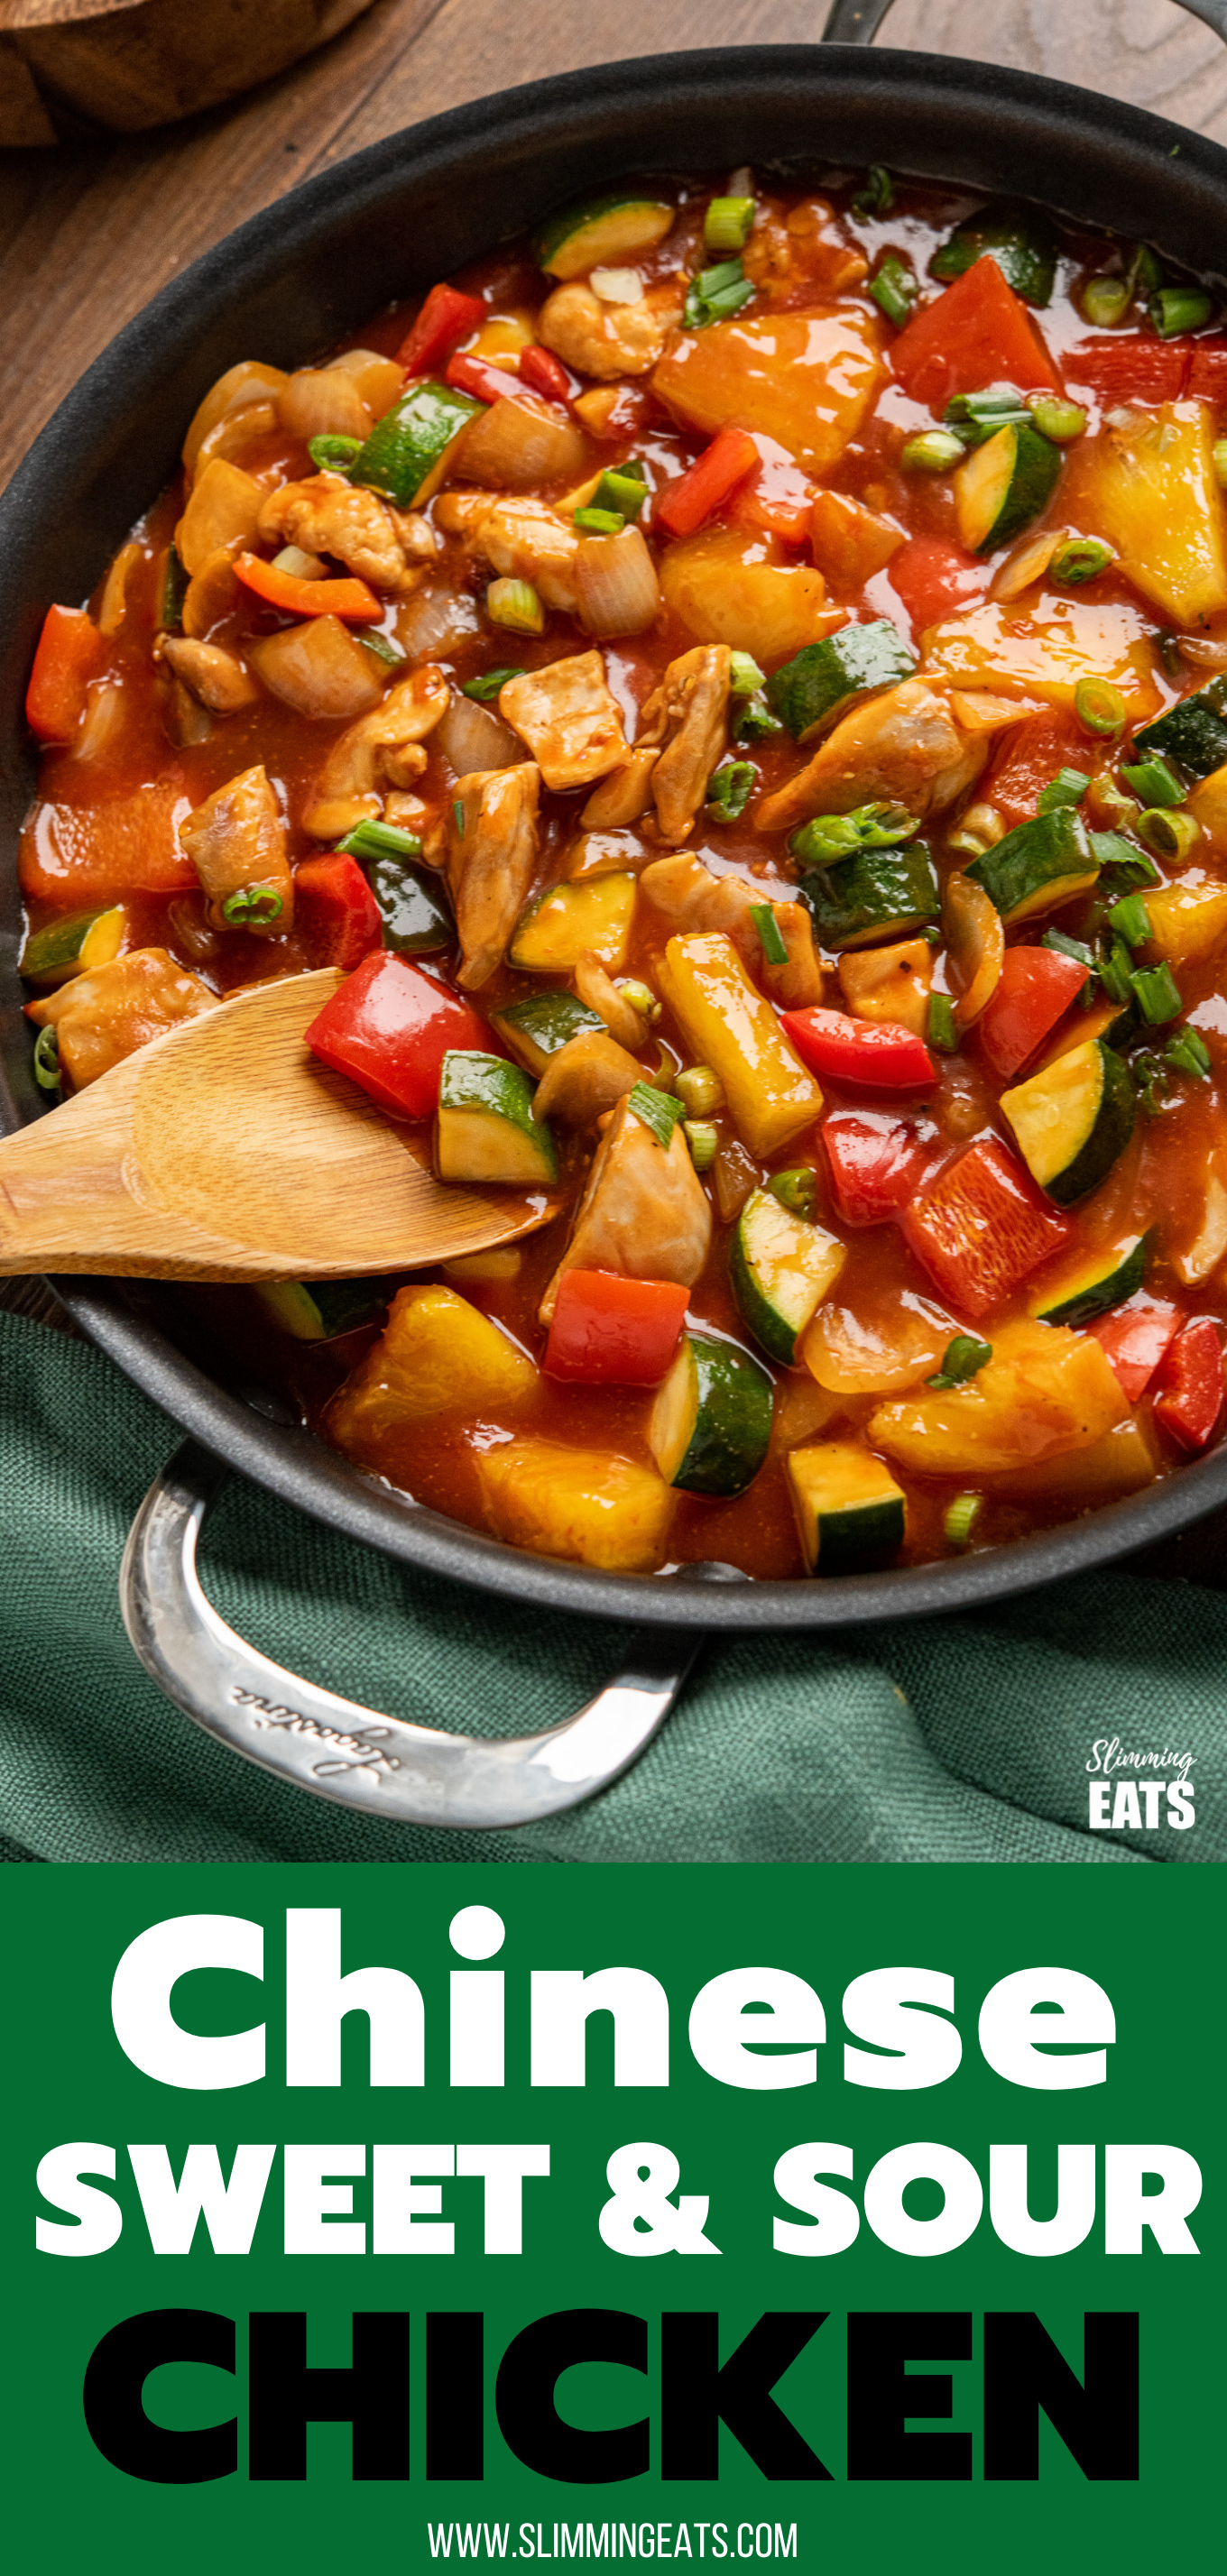 chinese sweet and sour chicken in frying pan with wooden spoon